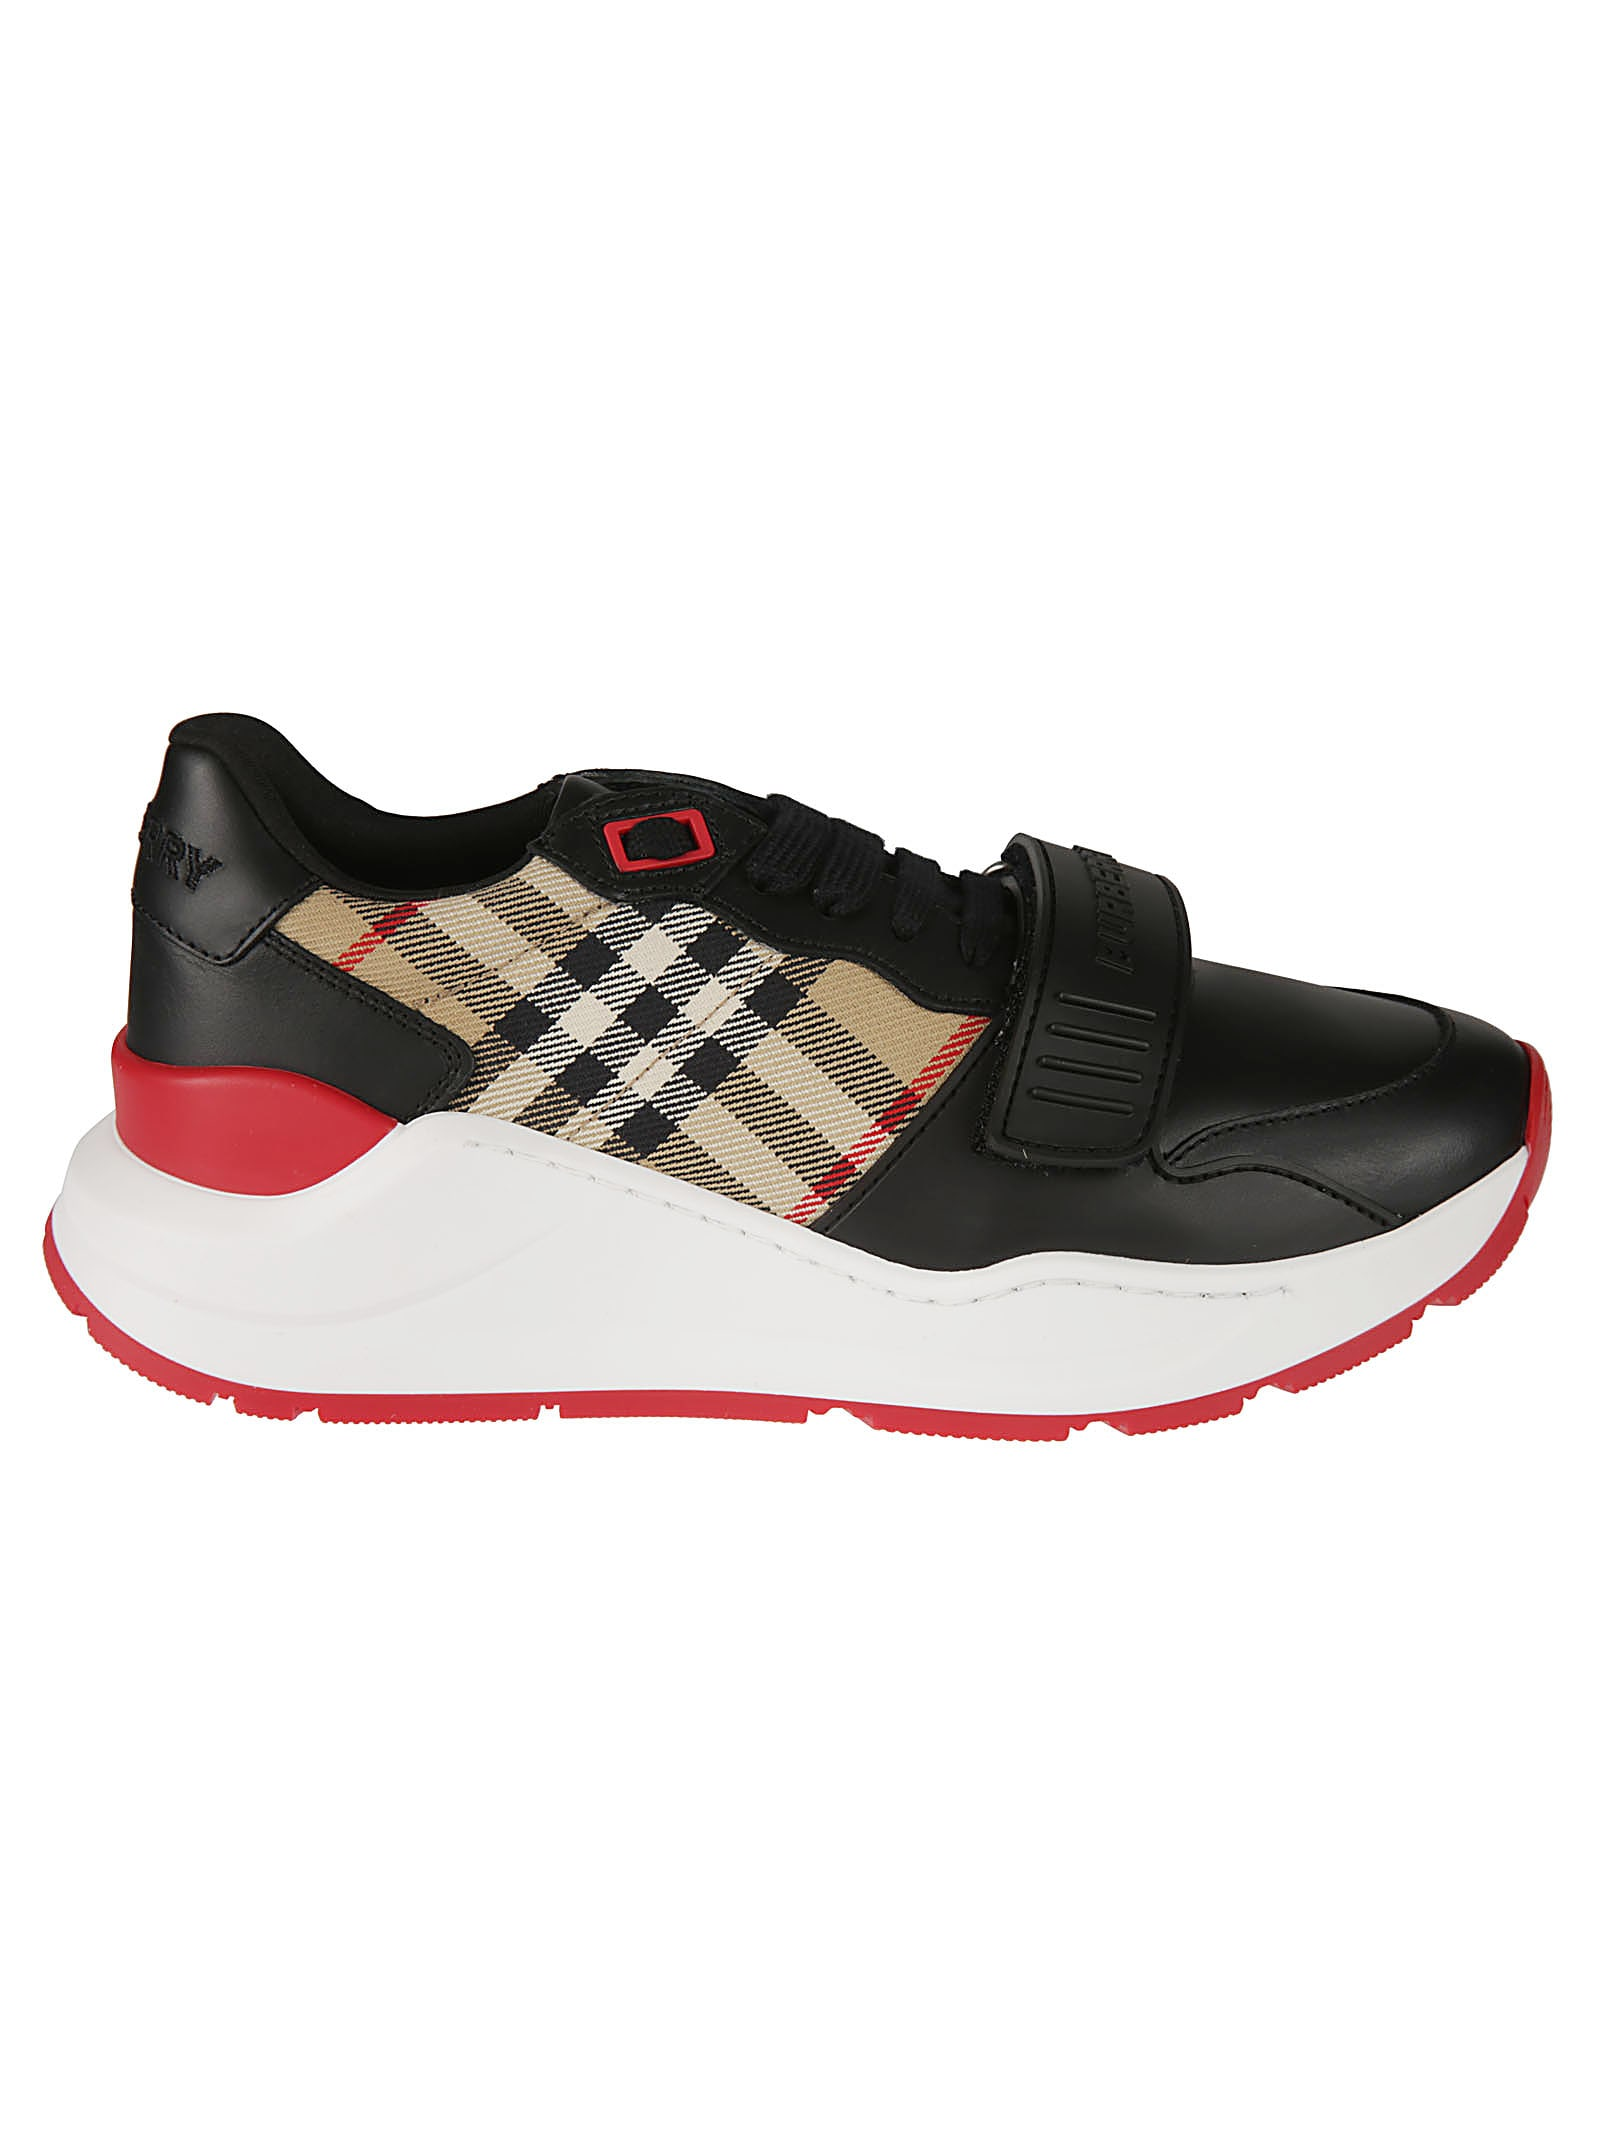 Burberry Low Top Check Detail Sneakers